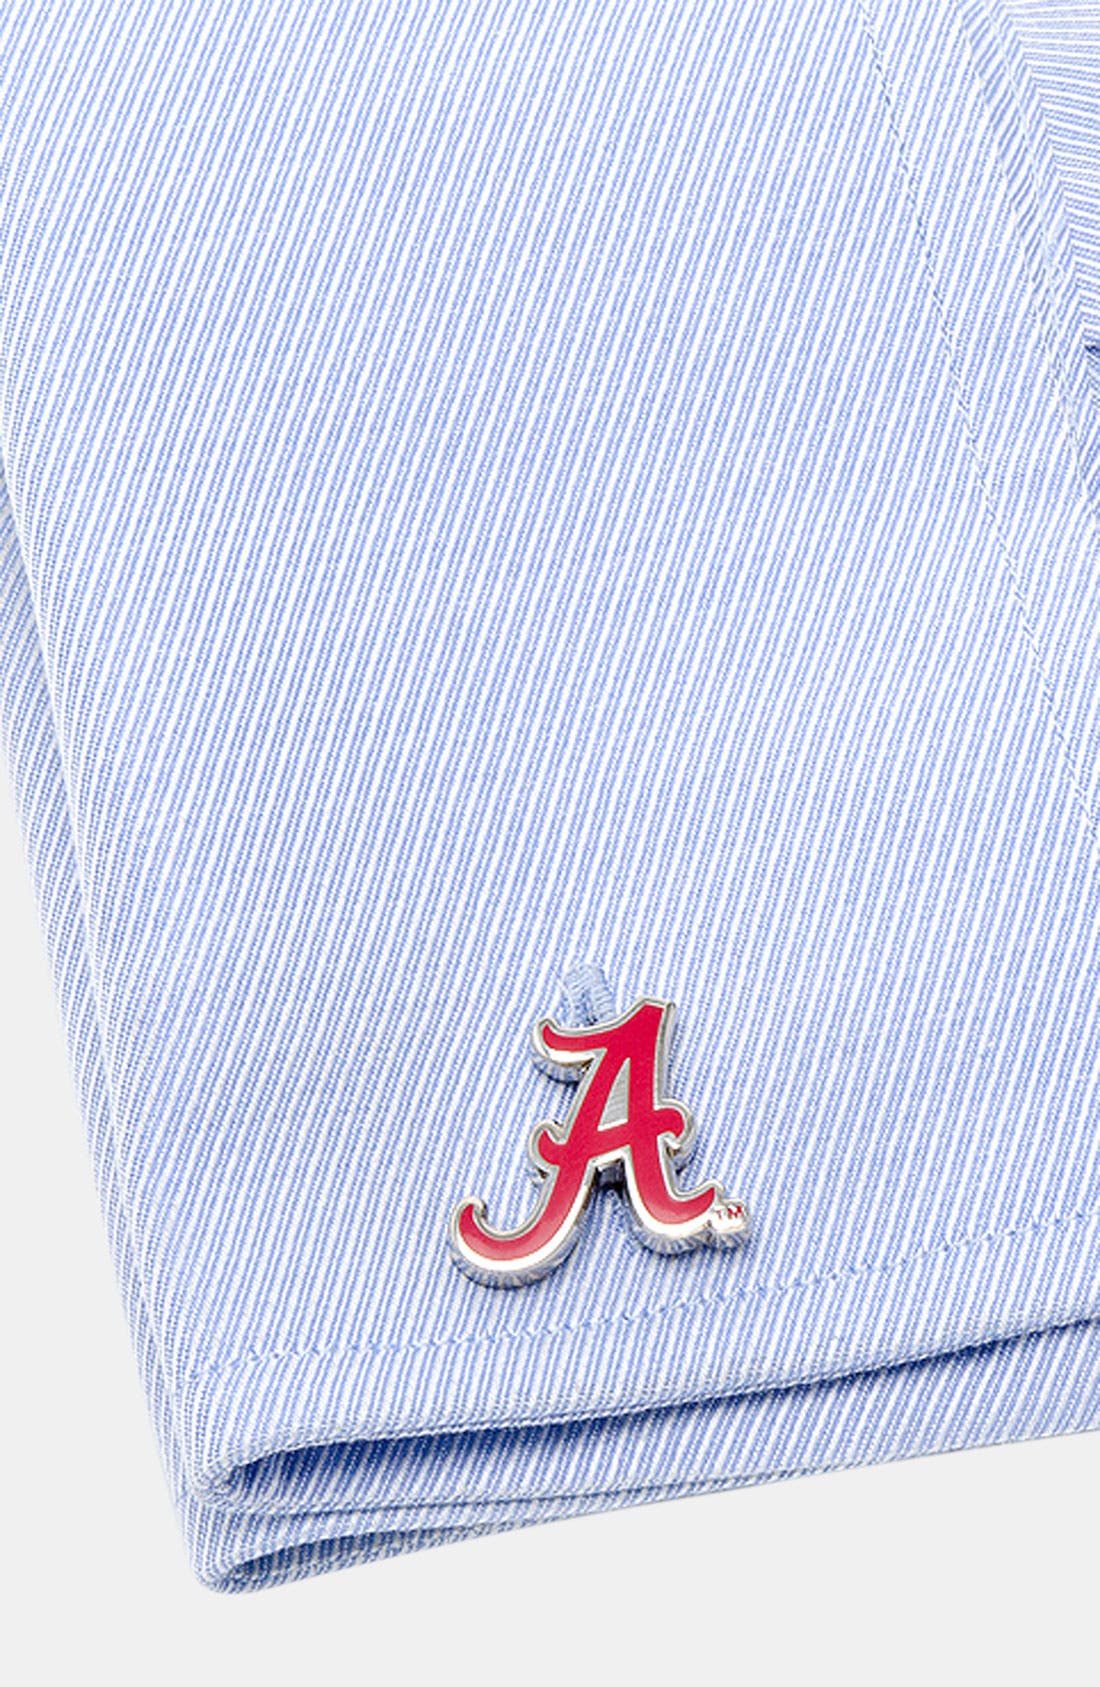 'University of Alabama Crimson Tide' Cuff Links,                             Alternate thumbnail 2, color,                             CRIMSON